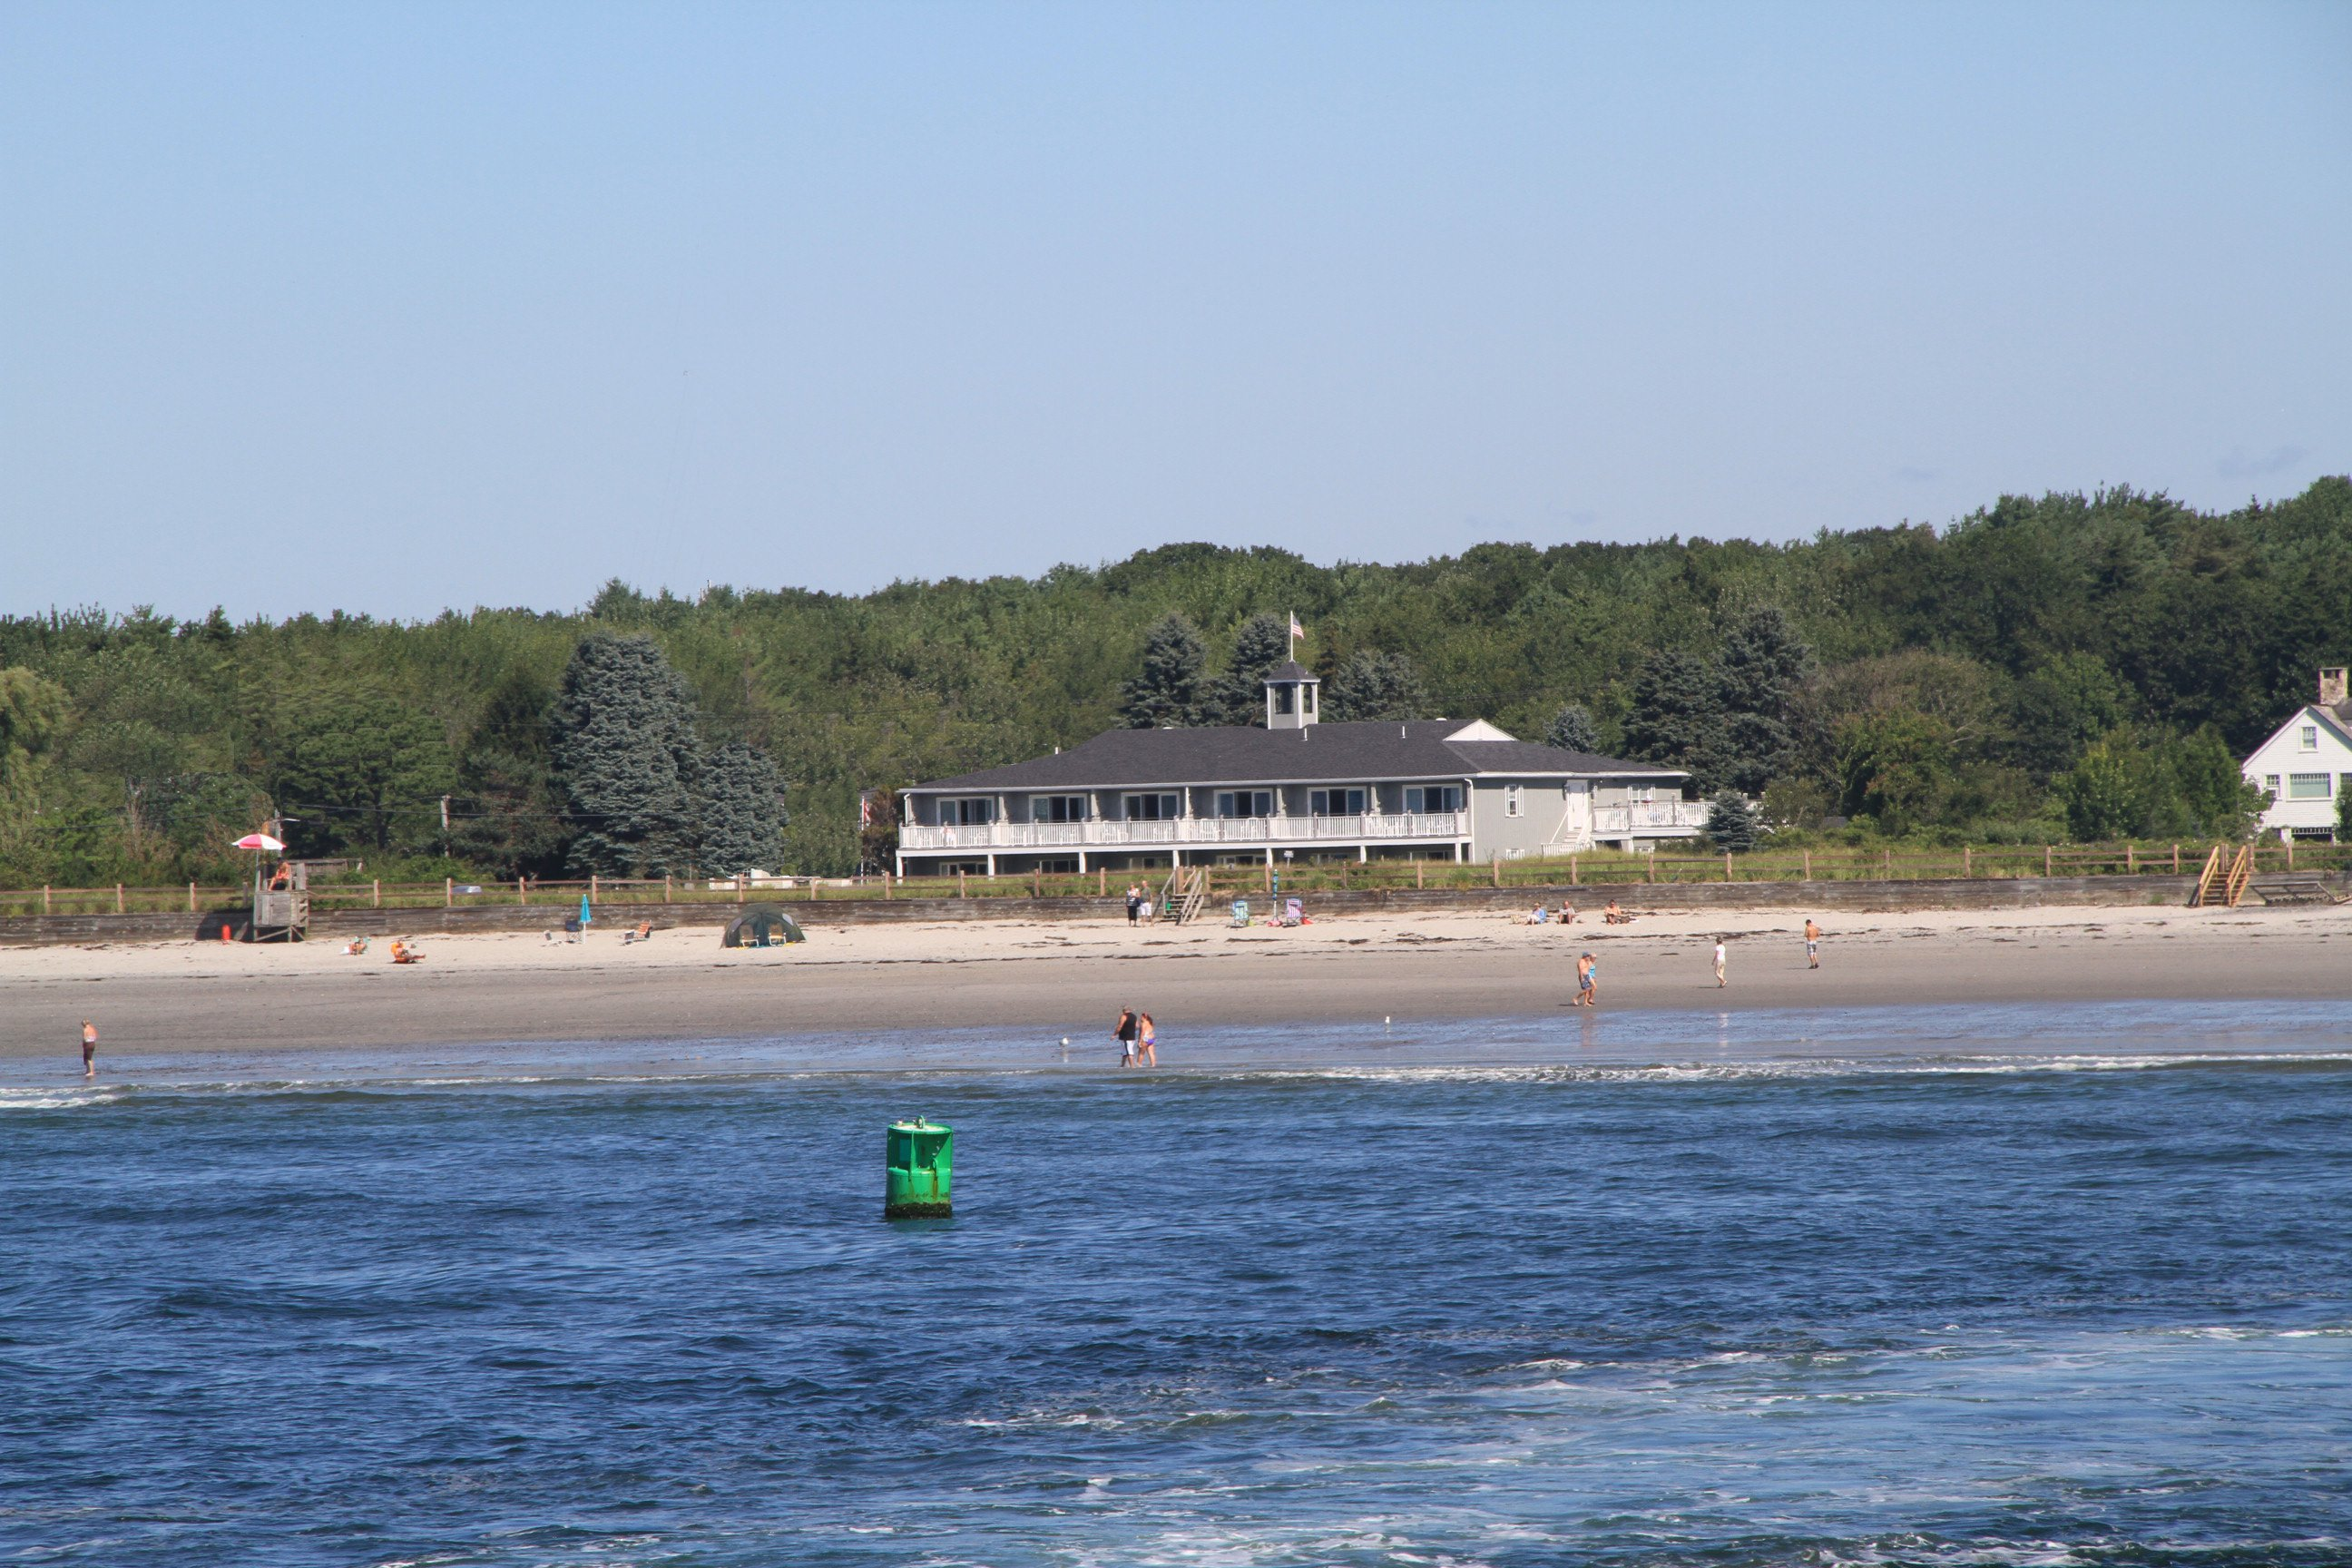 The only property on Kennebunk Beach